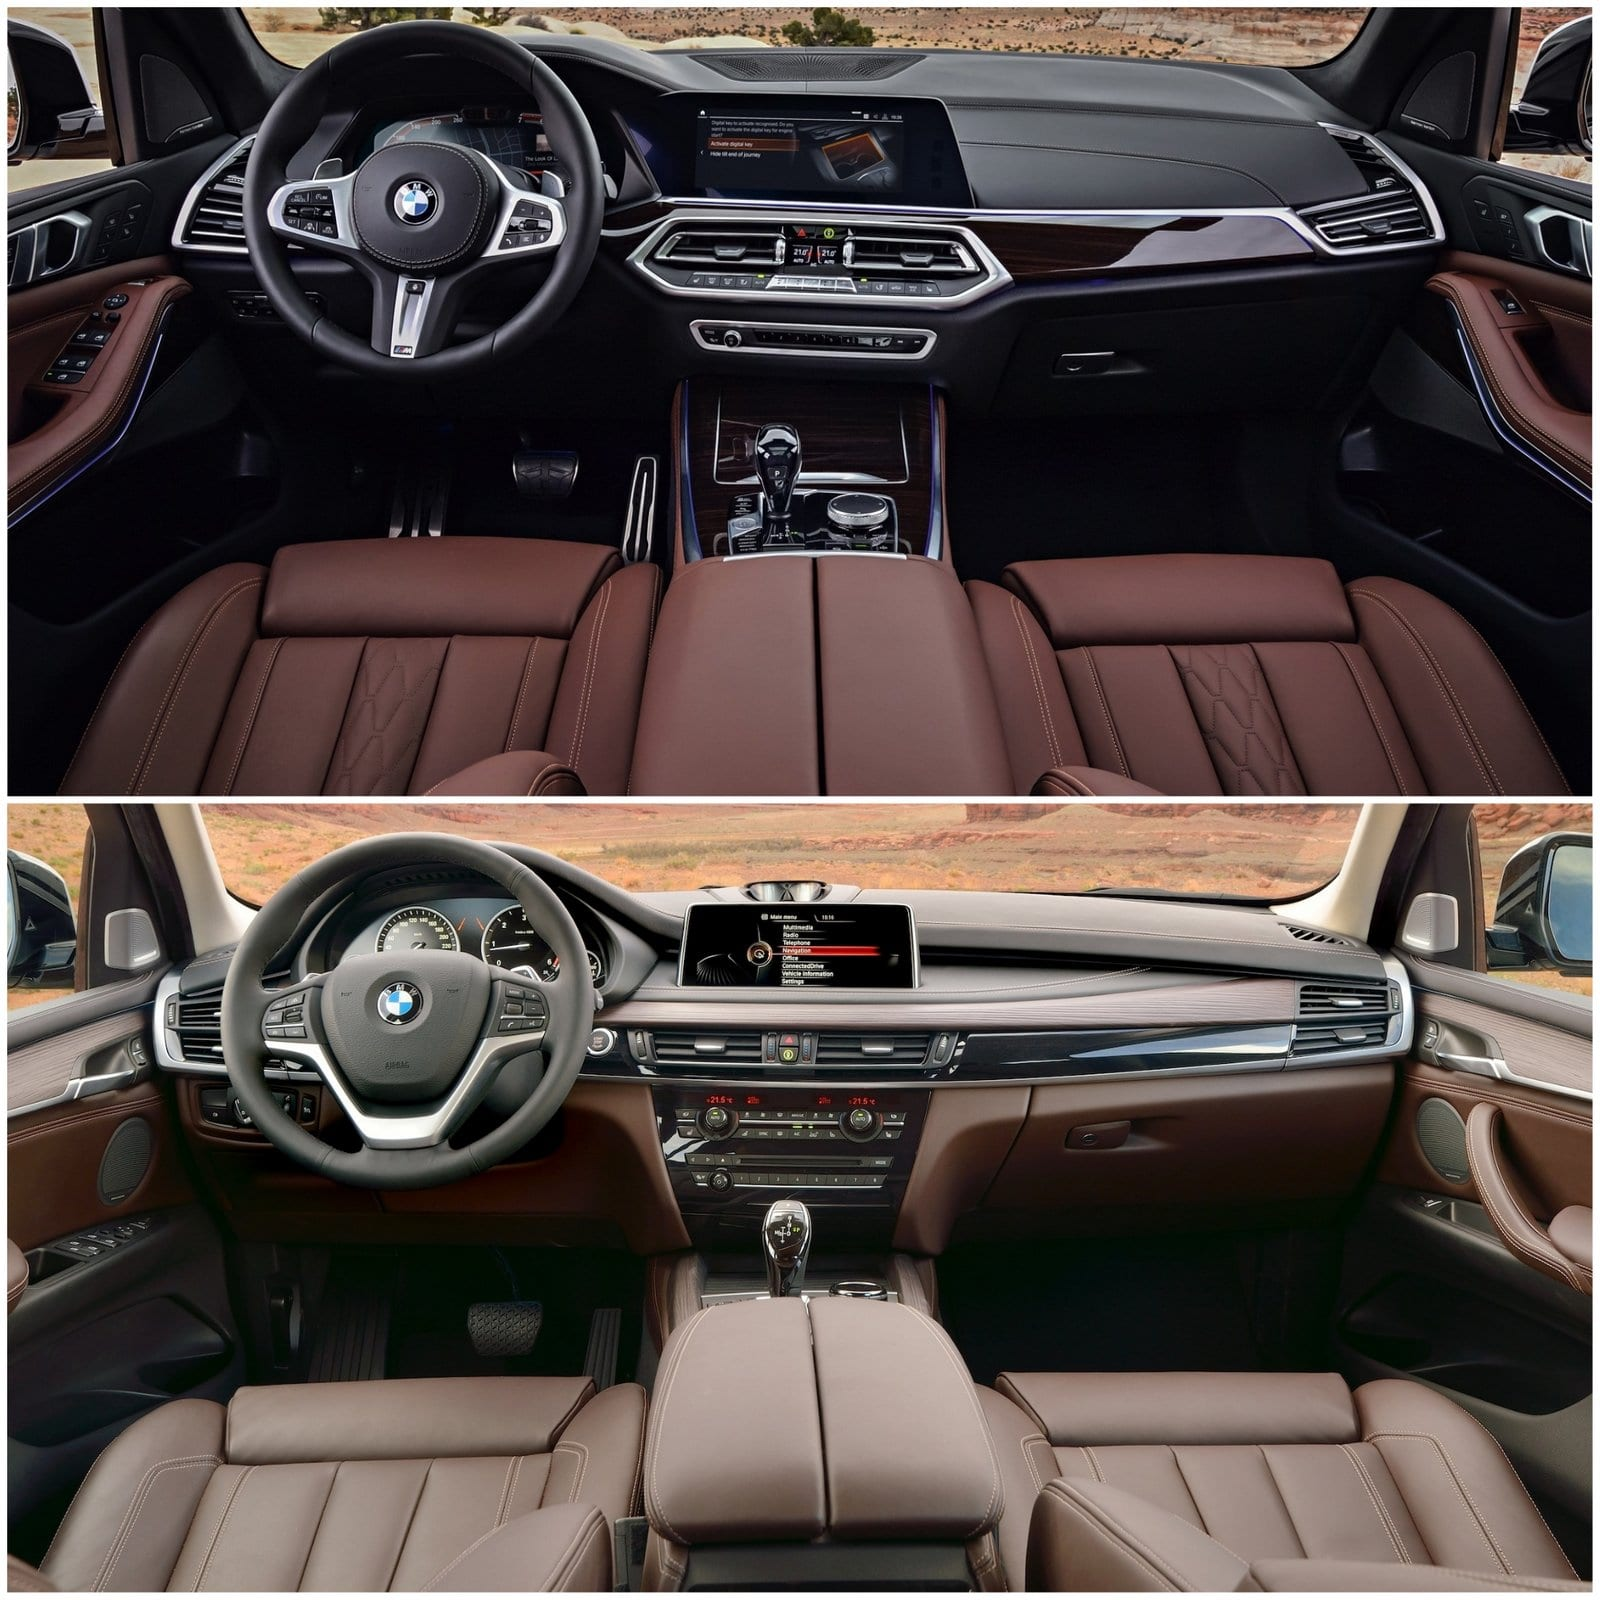 yeni bmw x5 kokpit dashboard